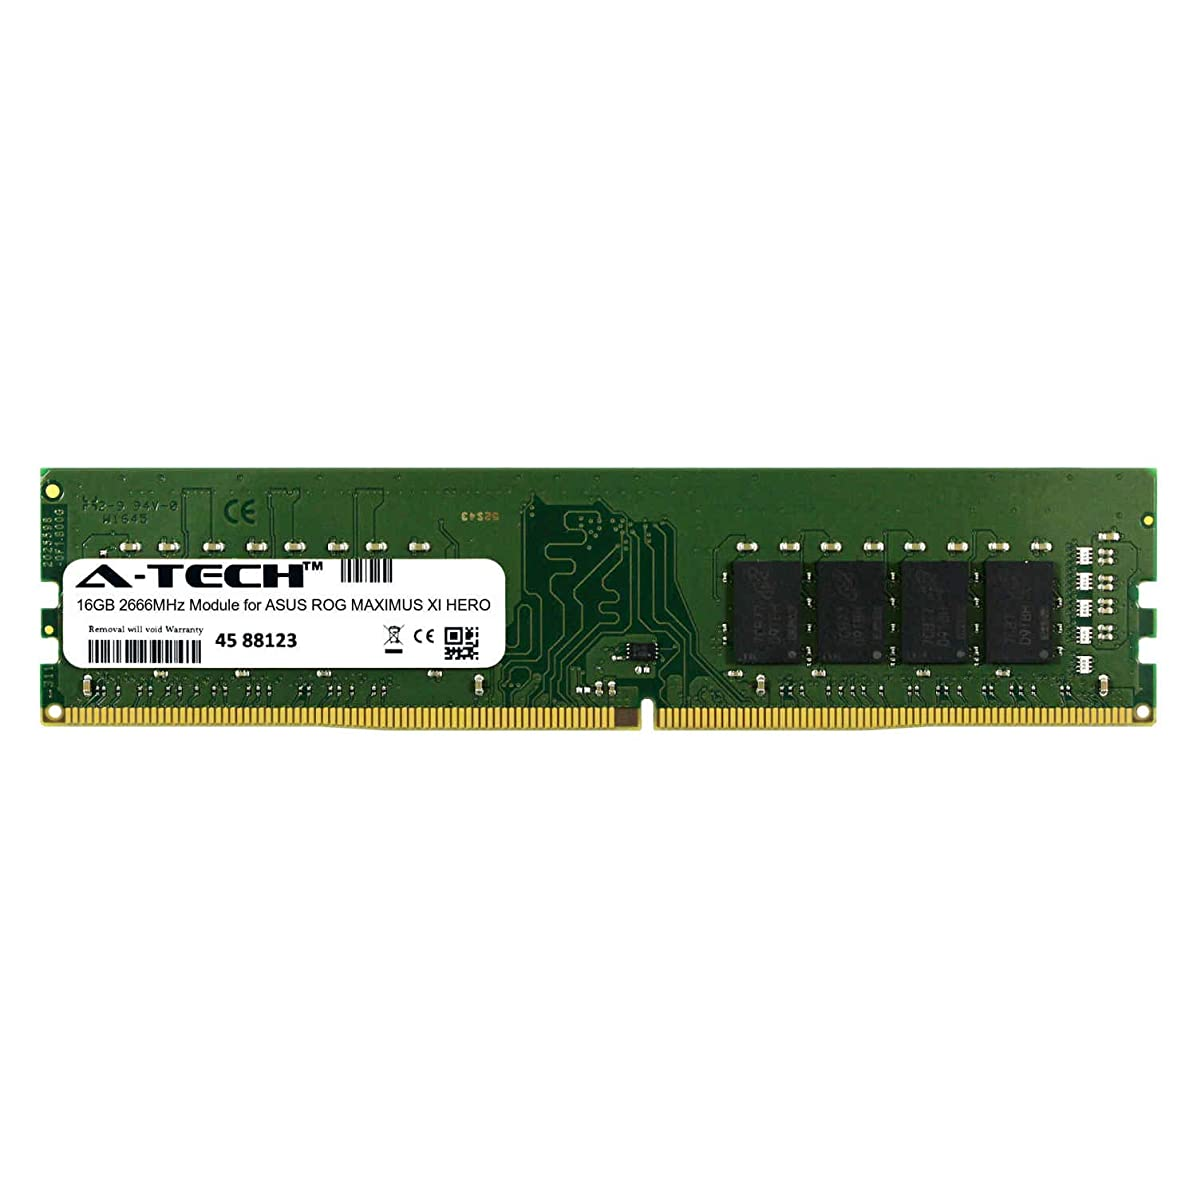 A-Tech 16GB Module for ASUS ROG Maximus XI Hero Desktop & Workstation Motherboard Compatible DDR4 2666Mhz Memory Ram (ATMS394694A25823X1)